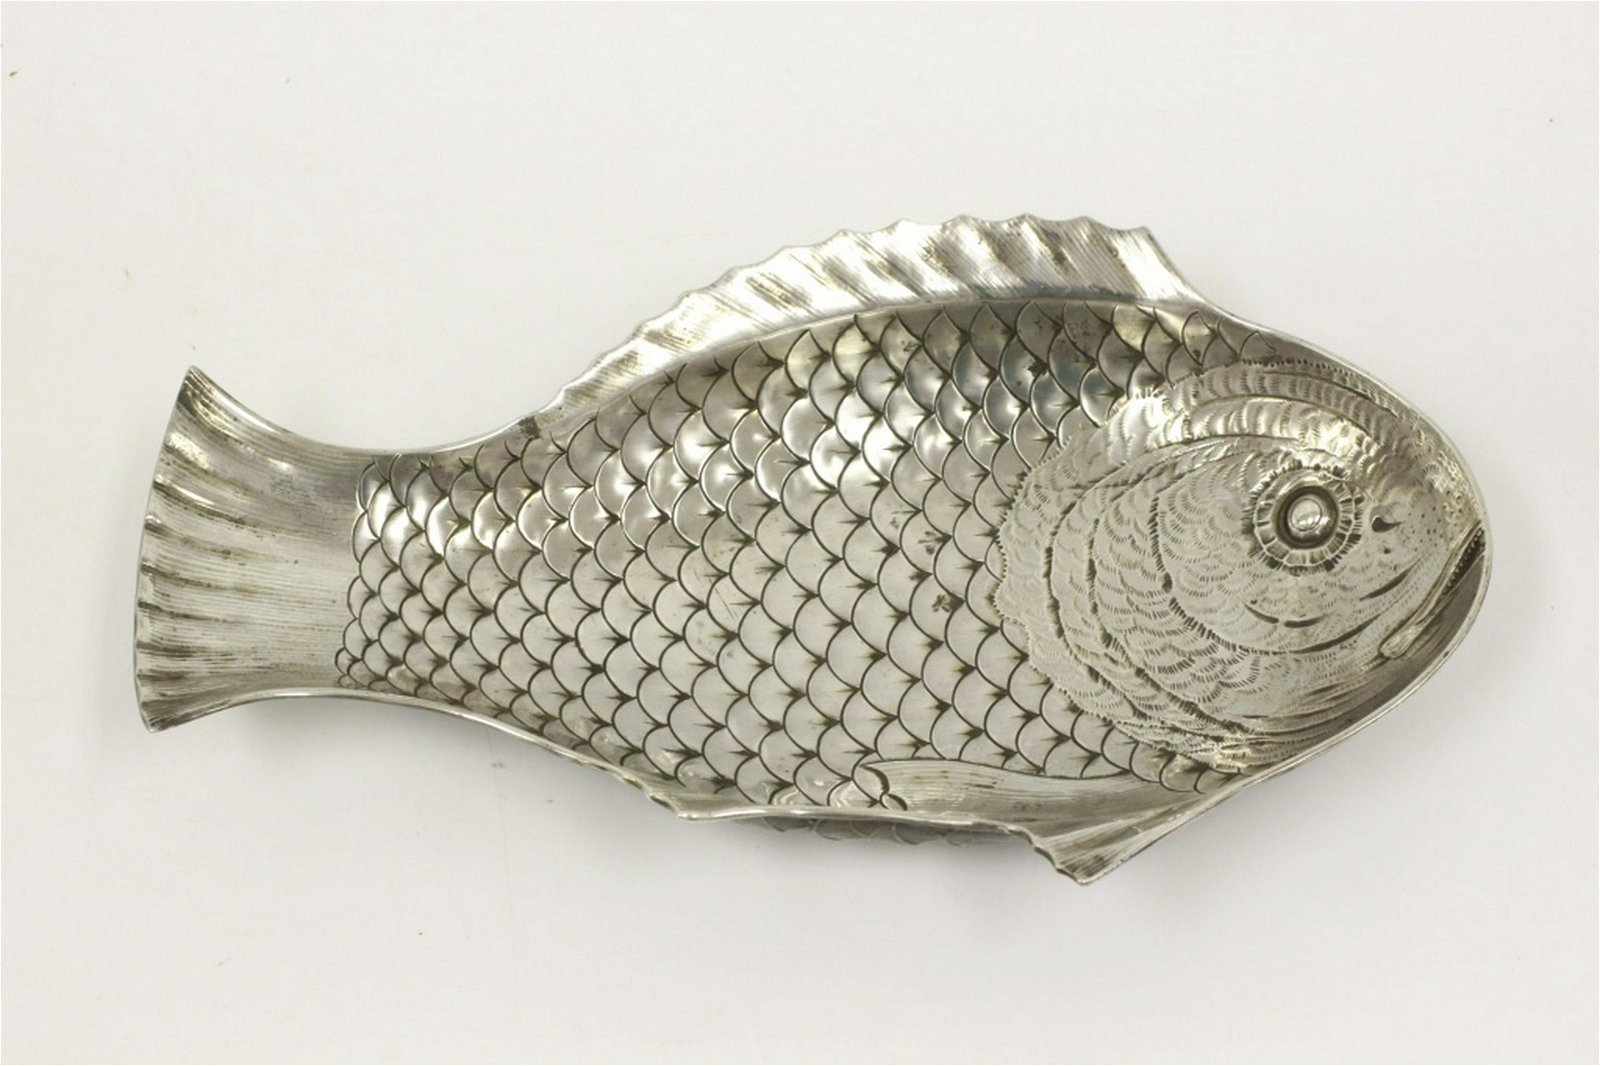 Gorham Unusual & Rare Sterling Silver Fish Platter